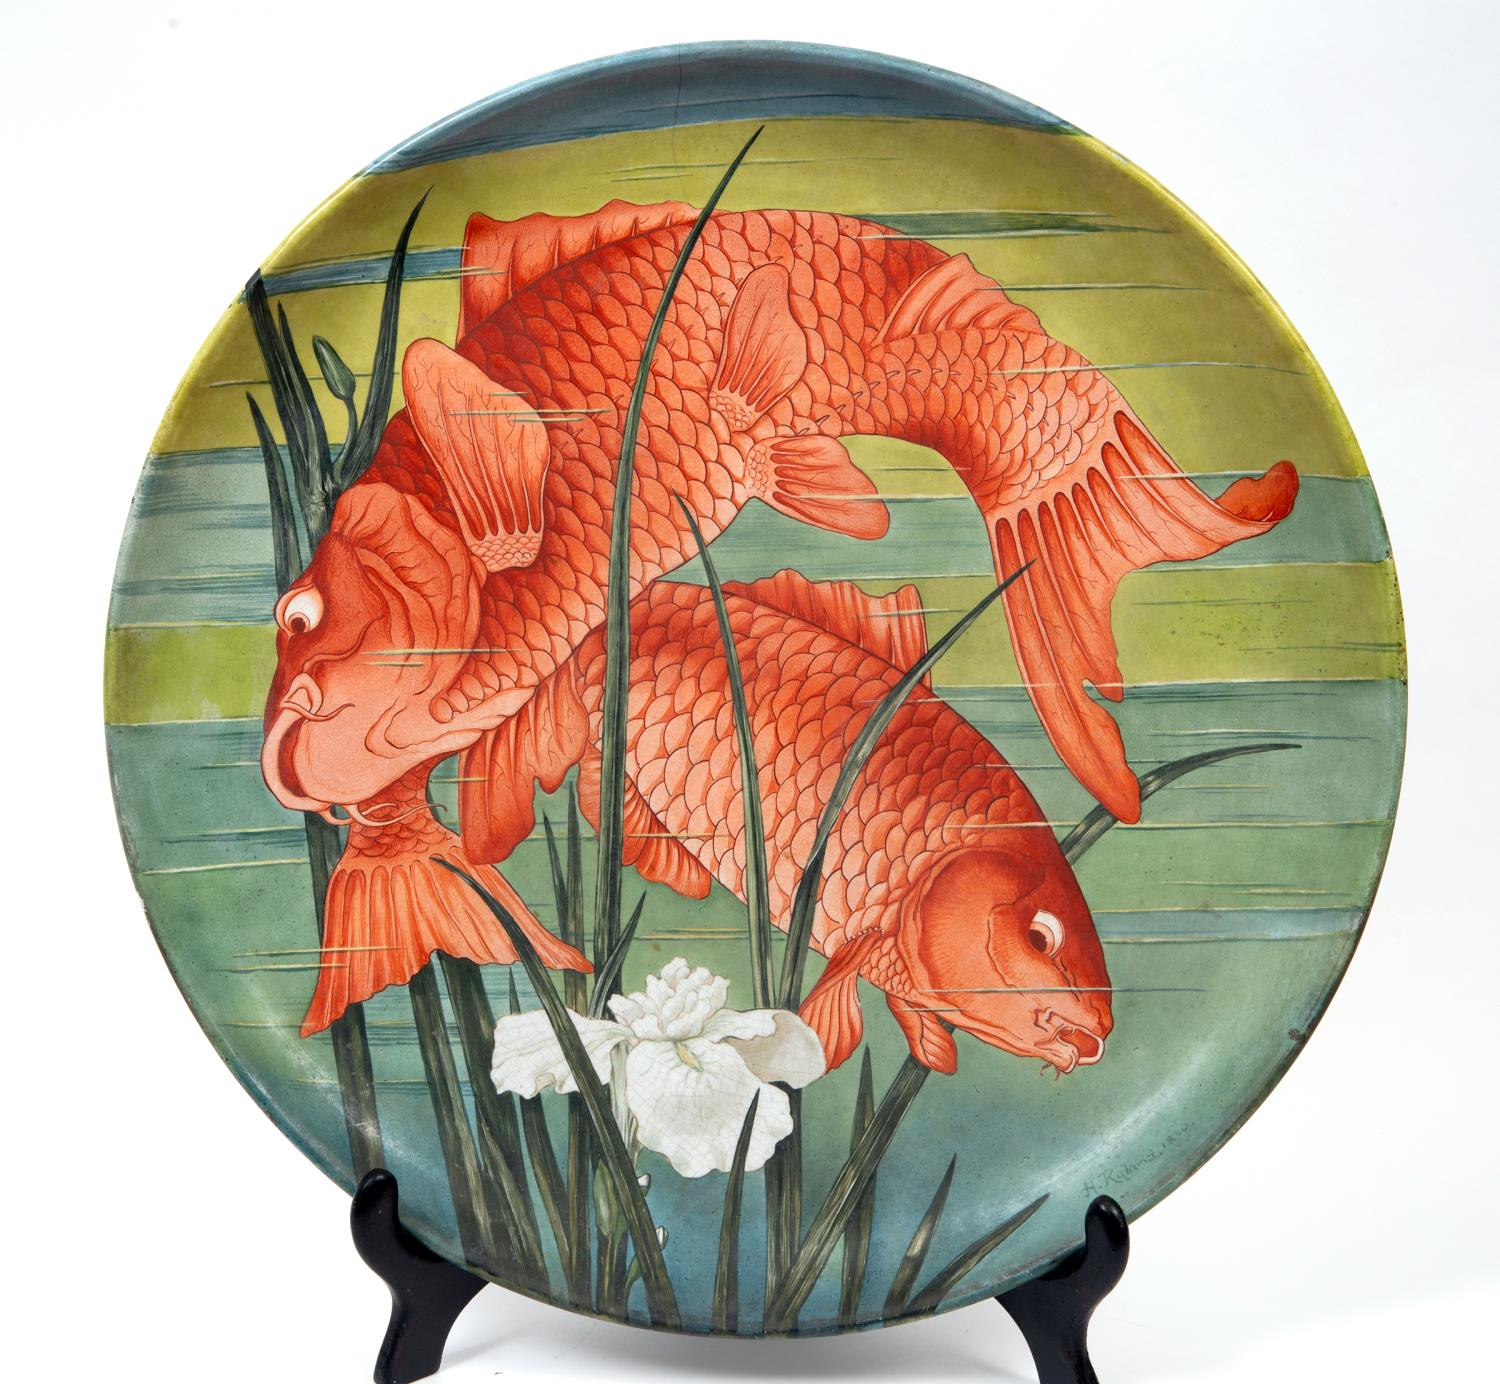 Lot 16 - A large Minton pottery plate, decorated a pair of carp by H Ryland, signed and dated 1880,